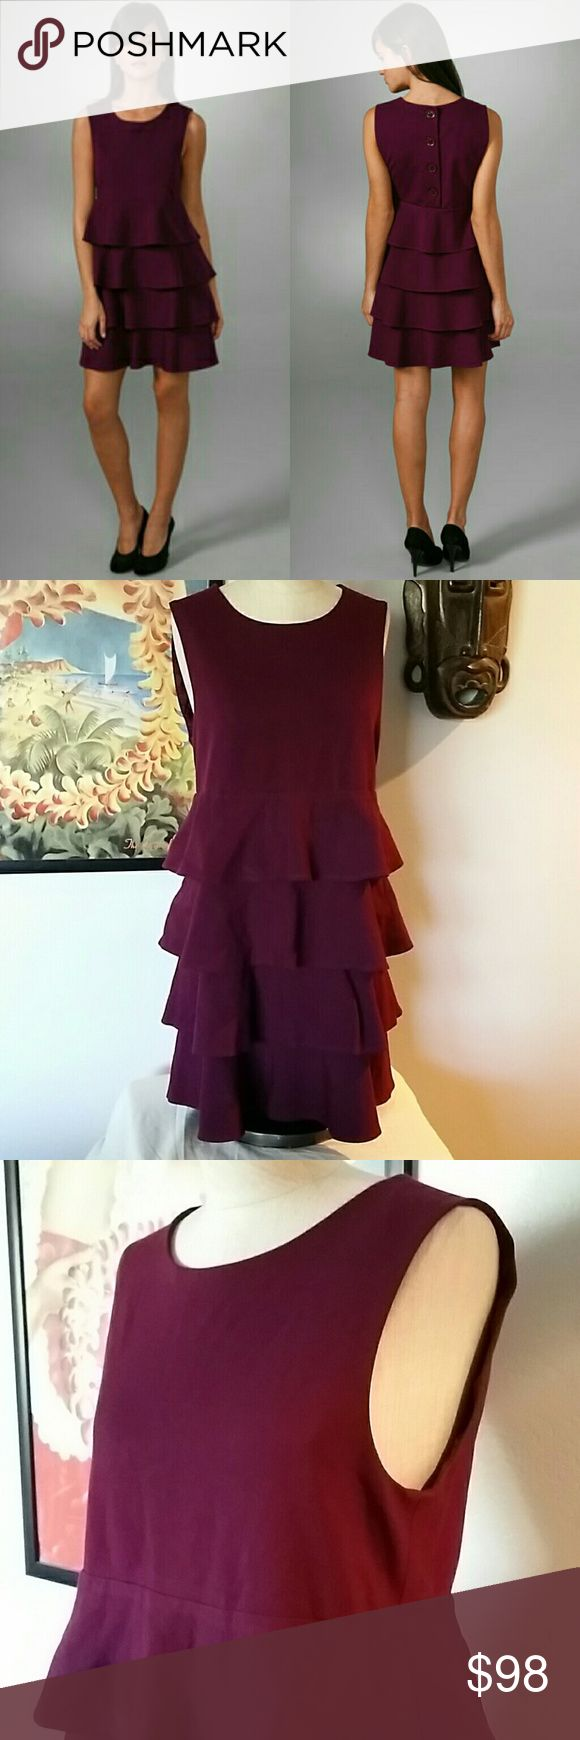 Theory Prisema Tiered Sleeveless Dress Size: M Color: Plum Euc very gently worn Scoop neck jersey style tiered dress. 3 Button back.   No trades Reasonable offers considered on this and bundles! Theory Dresses